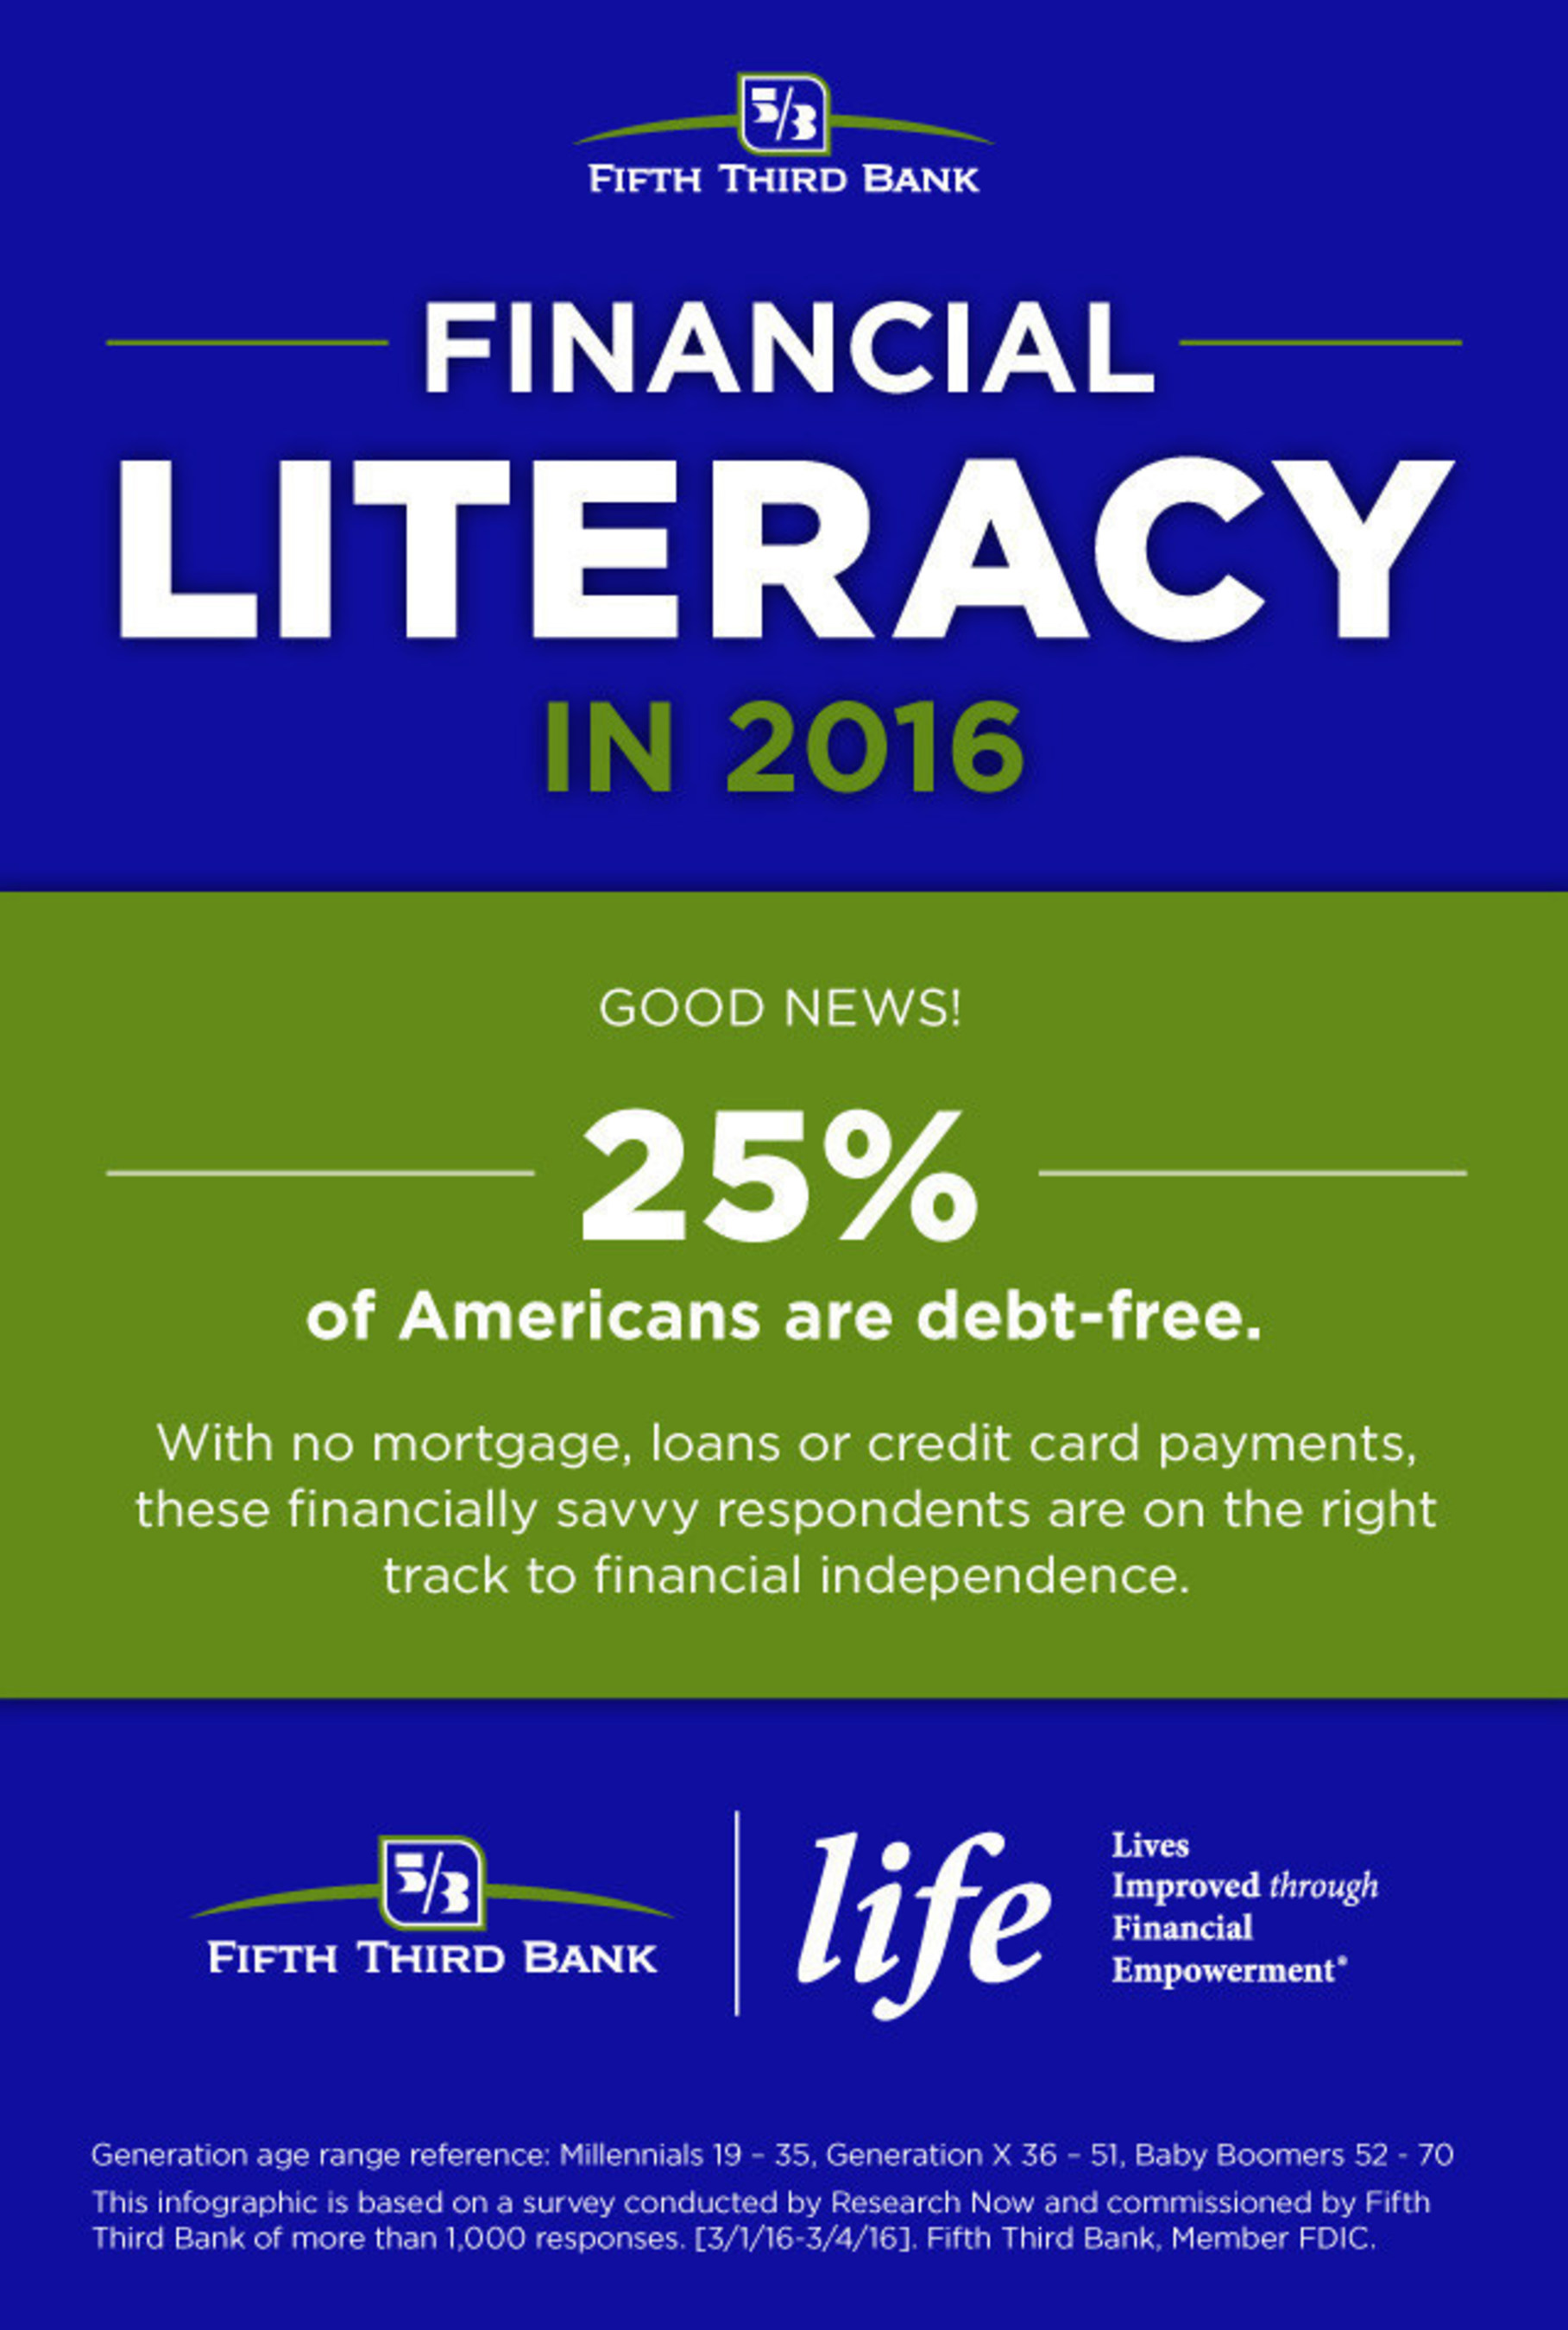 According to a recent study from Fifth Third Bank, one in four Americans are debt-free.